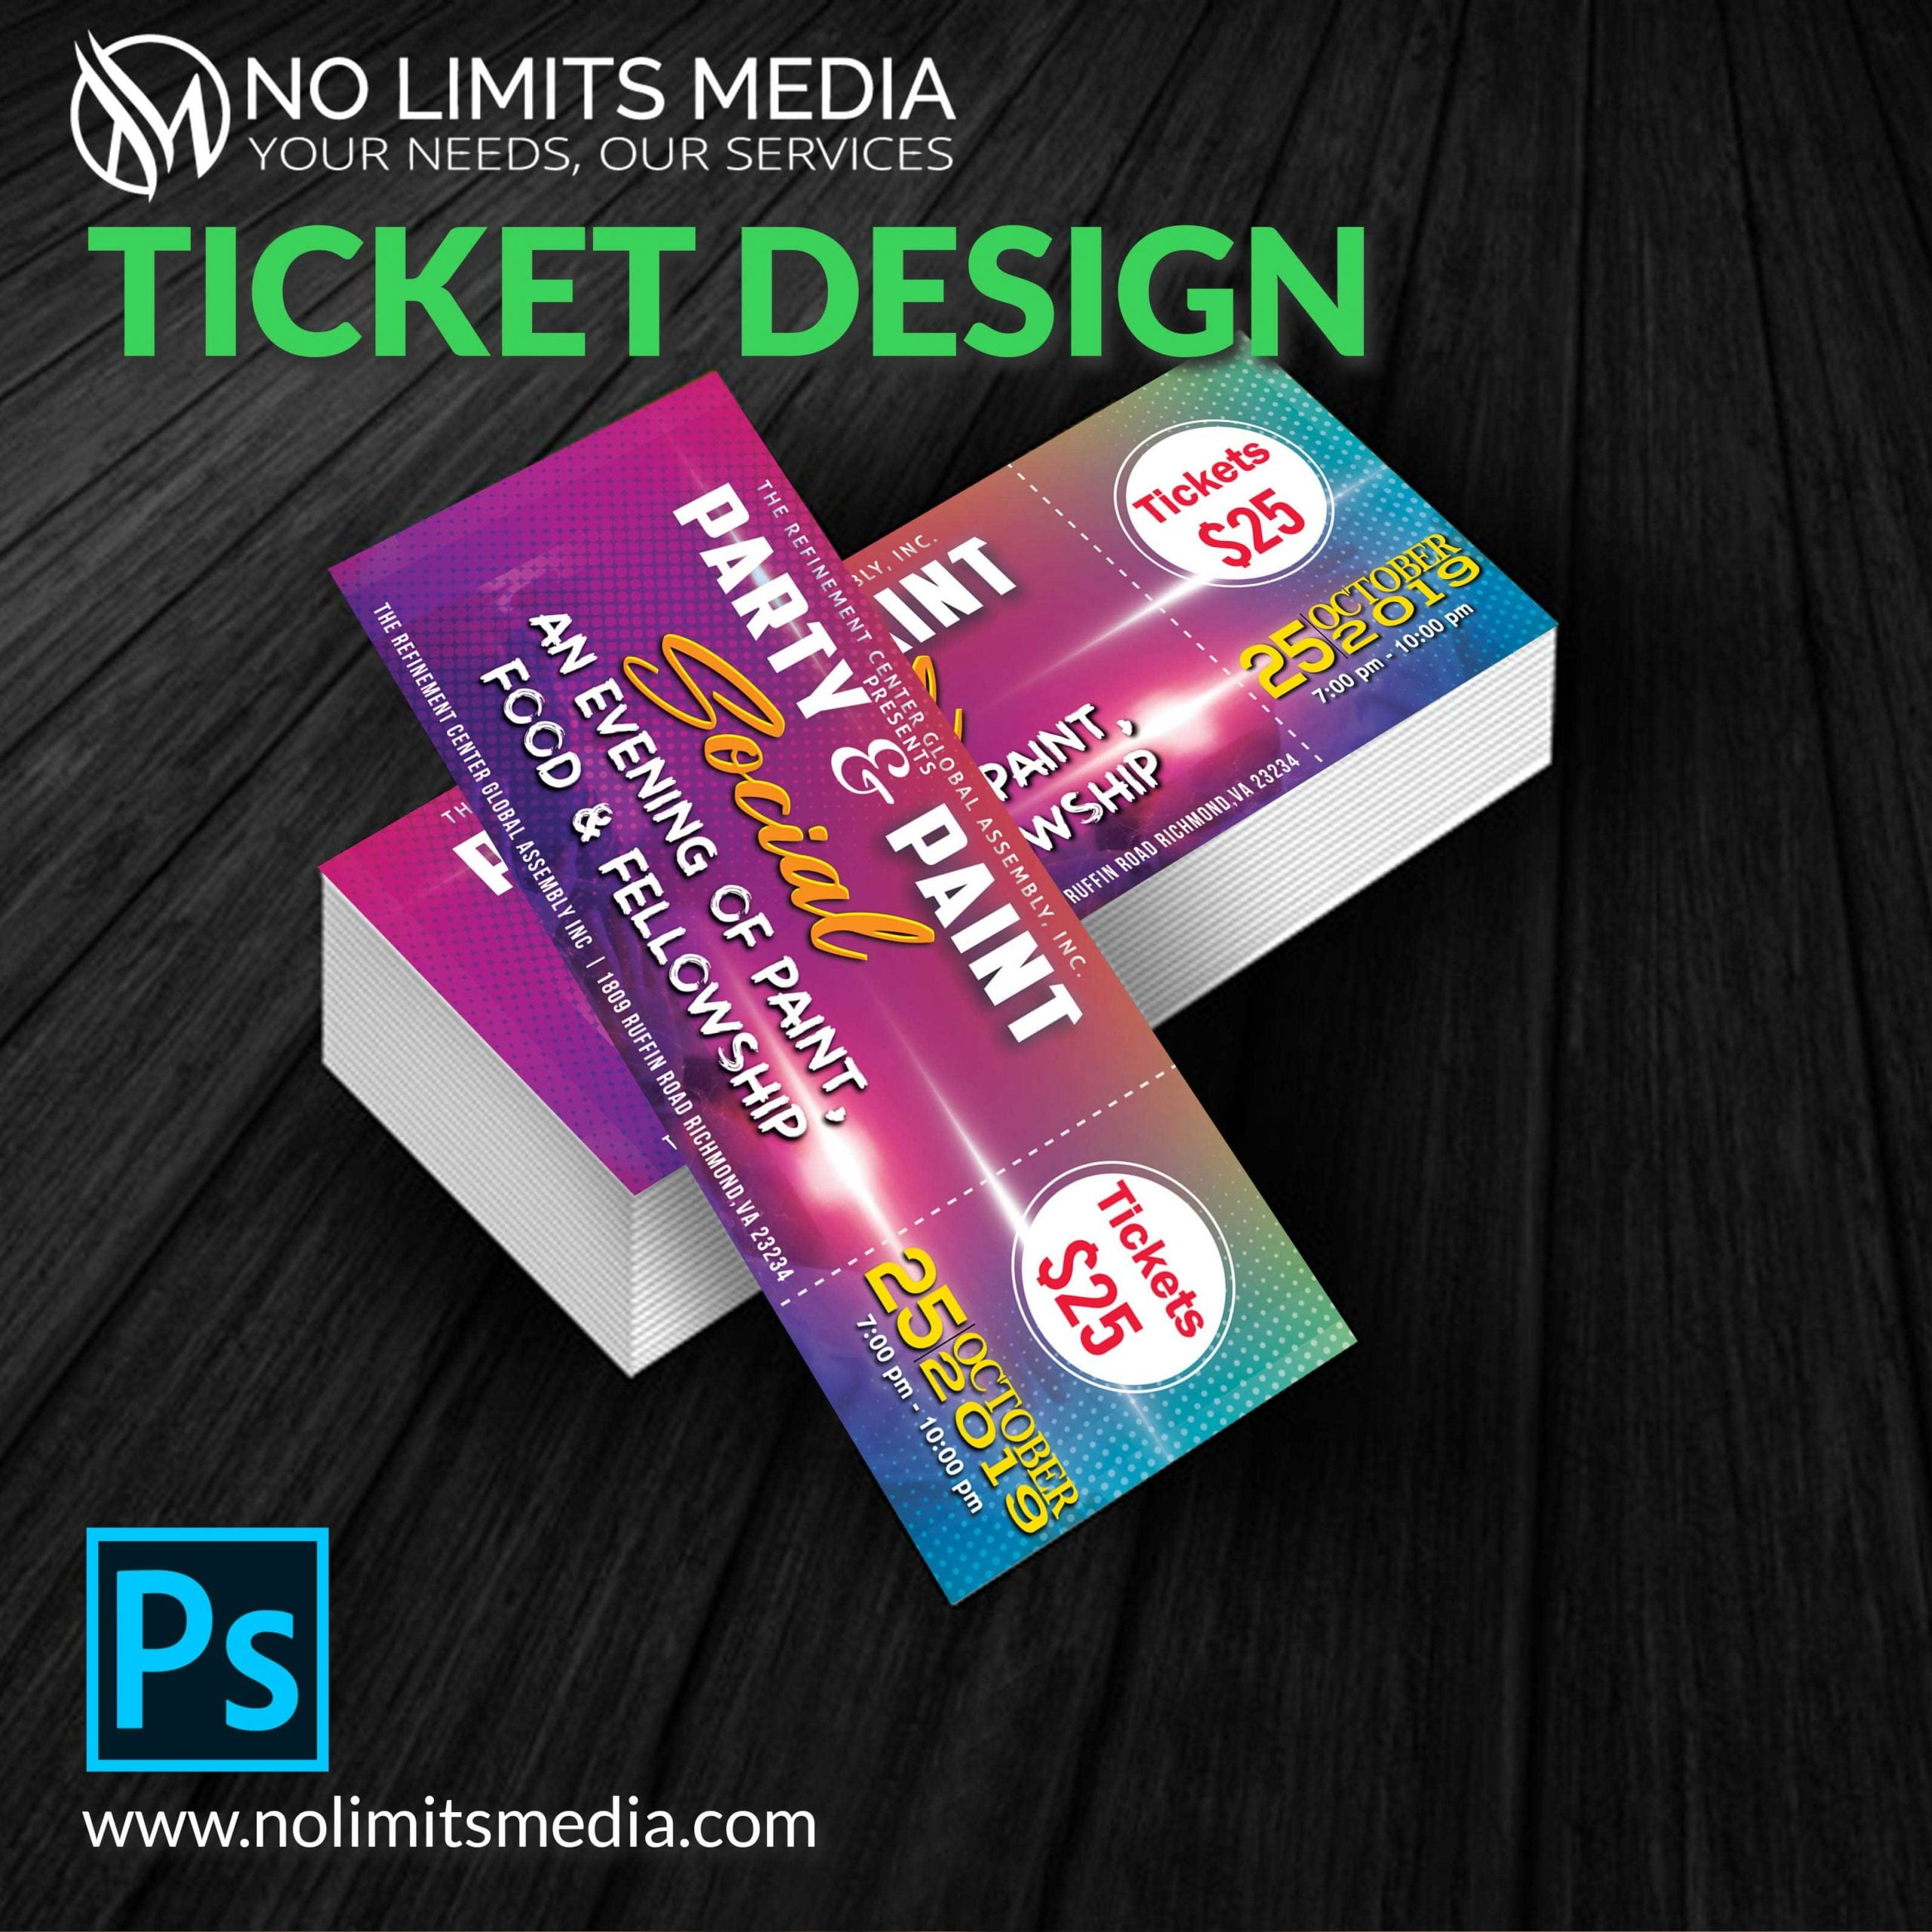 RCGA-Paint-and-Dine-Social-Graphic-Ticket-copy.jpg